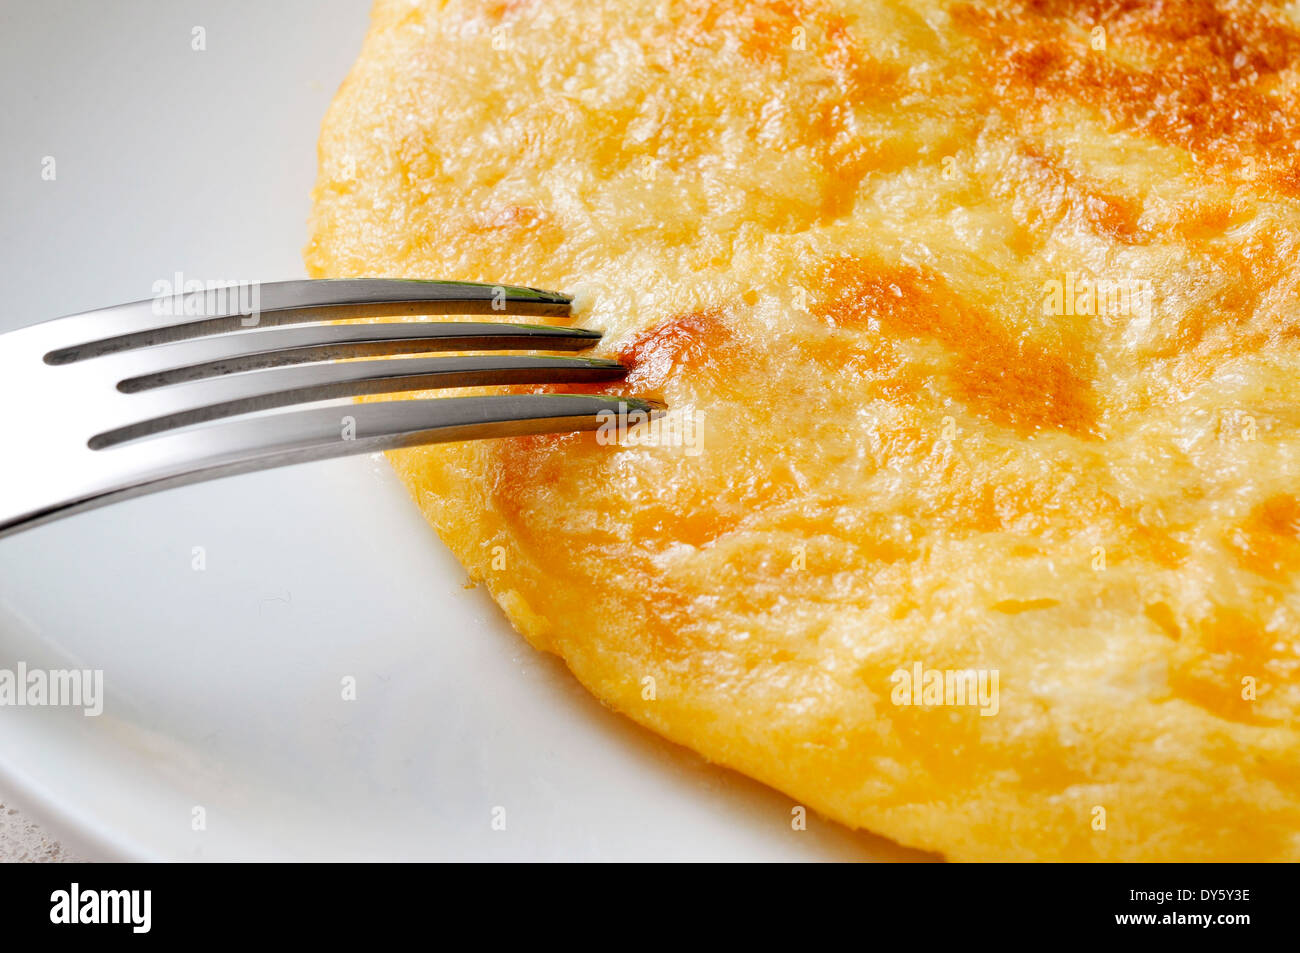 closeup of a plate with a typical tortilla de patatas, spanish omelet, on a set table - Stock Image